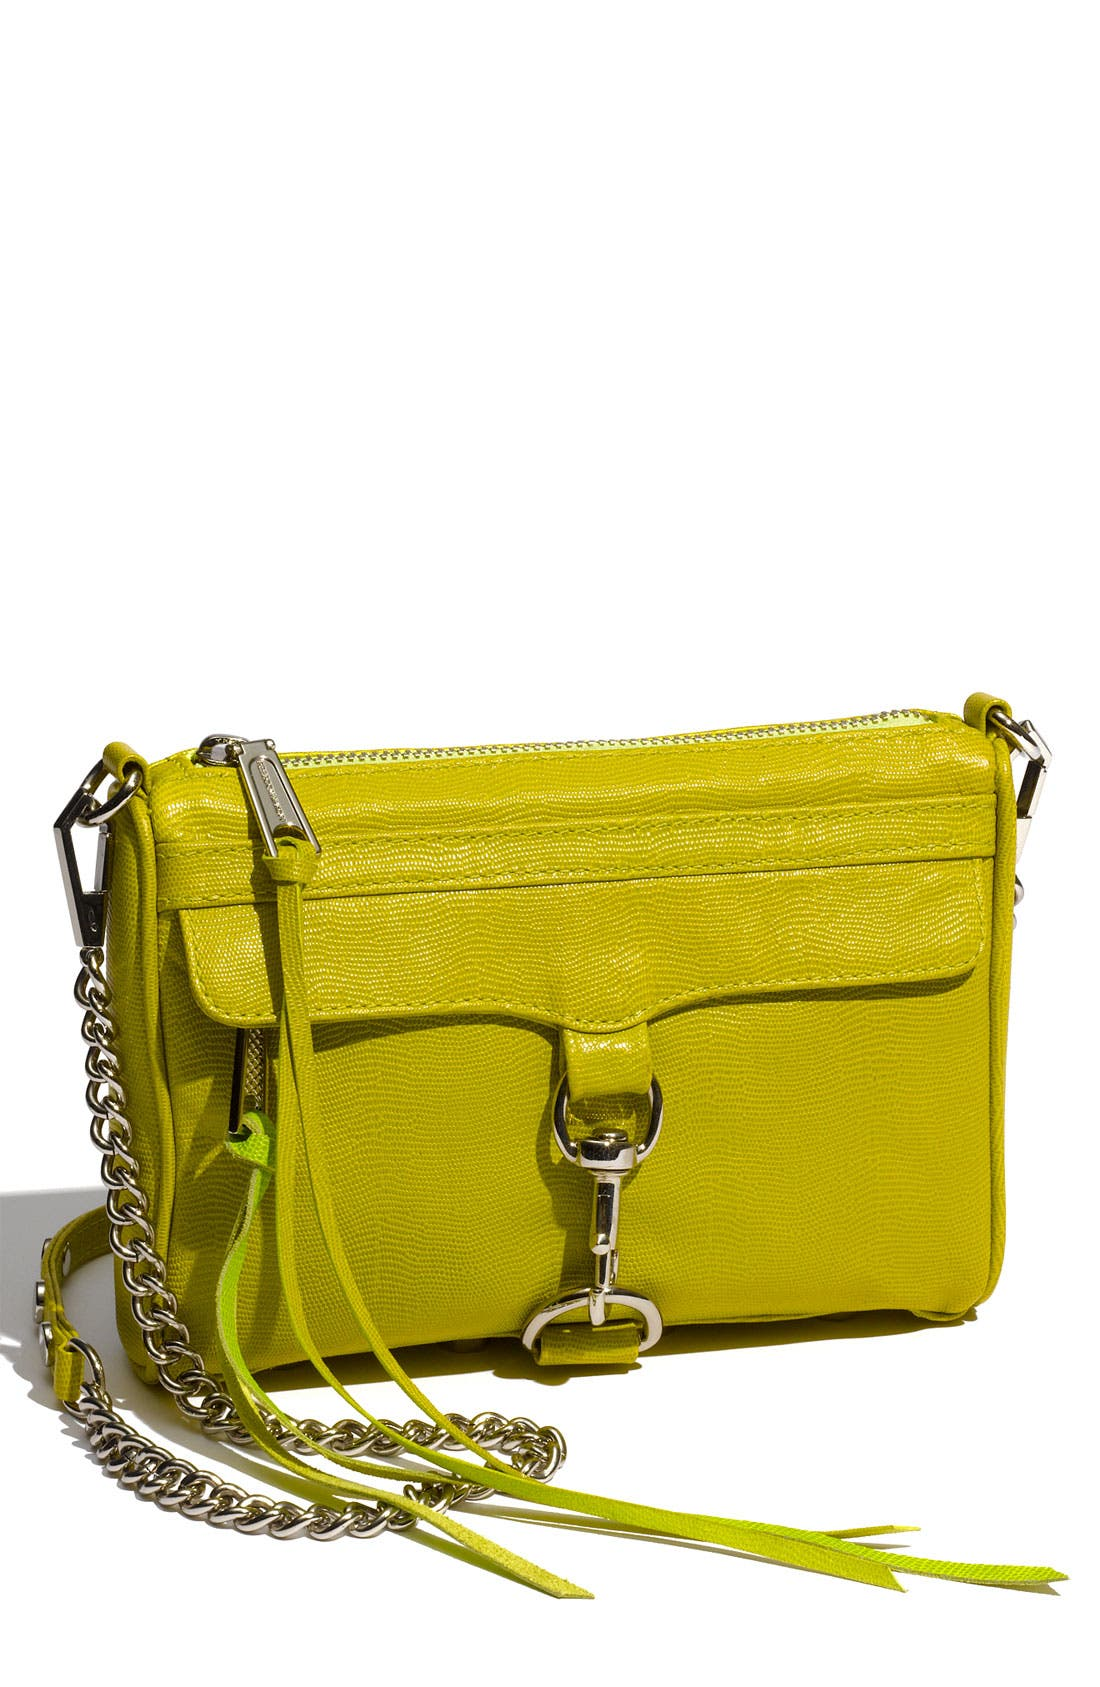 'Mini MAC' Croc Embossed Convertible Crossbody Bag,                             Main thumbnail 11, color,